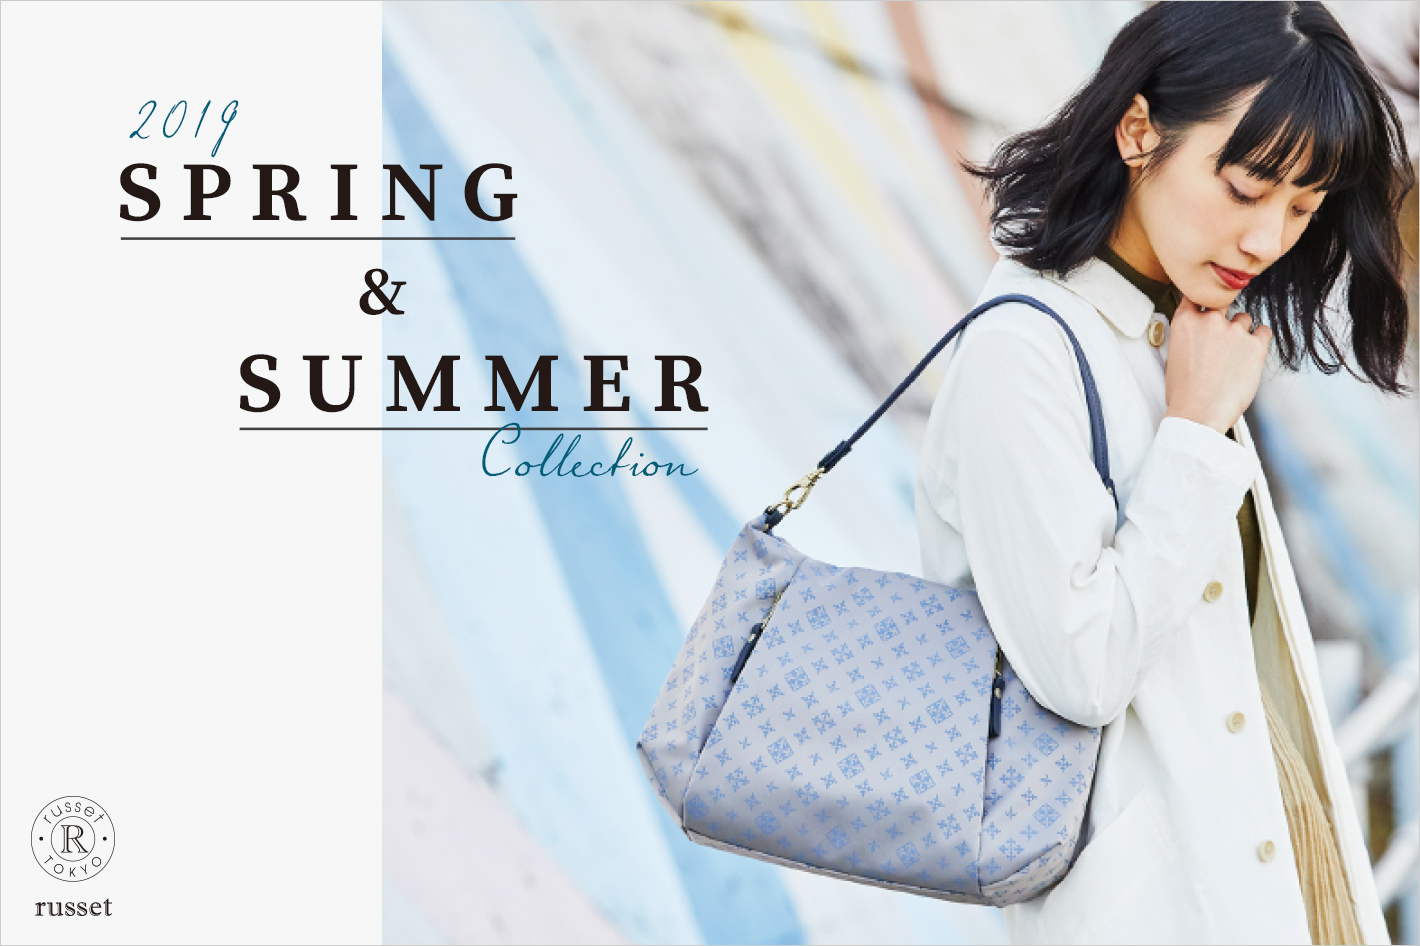 2019 SPRING &SUMMER Collection